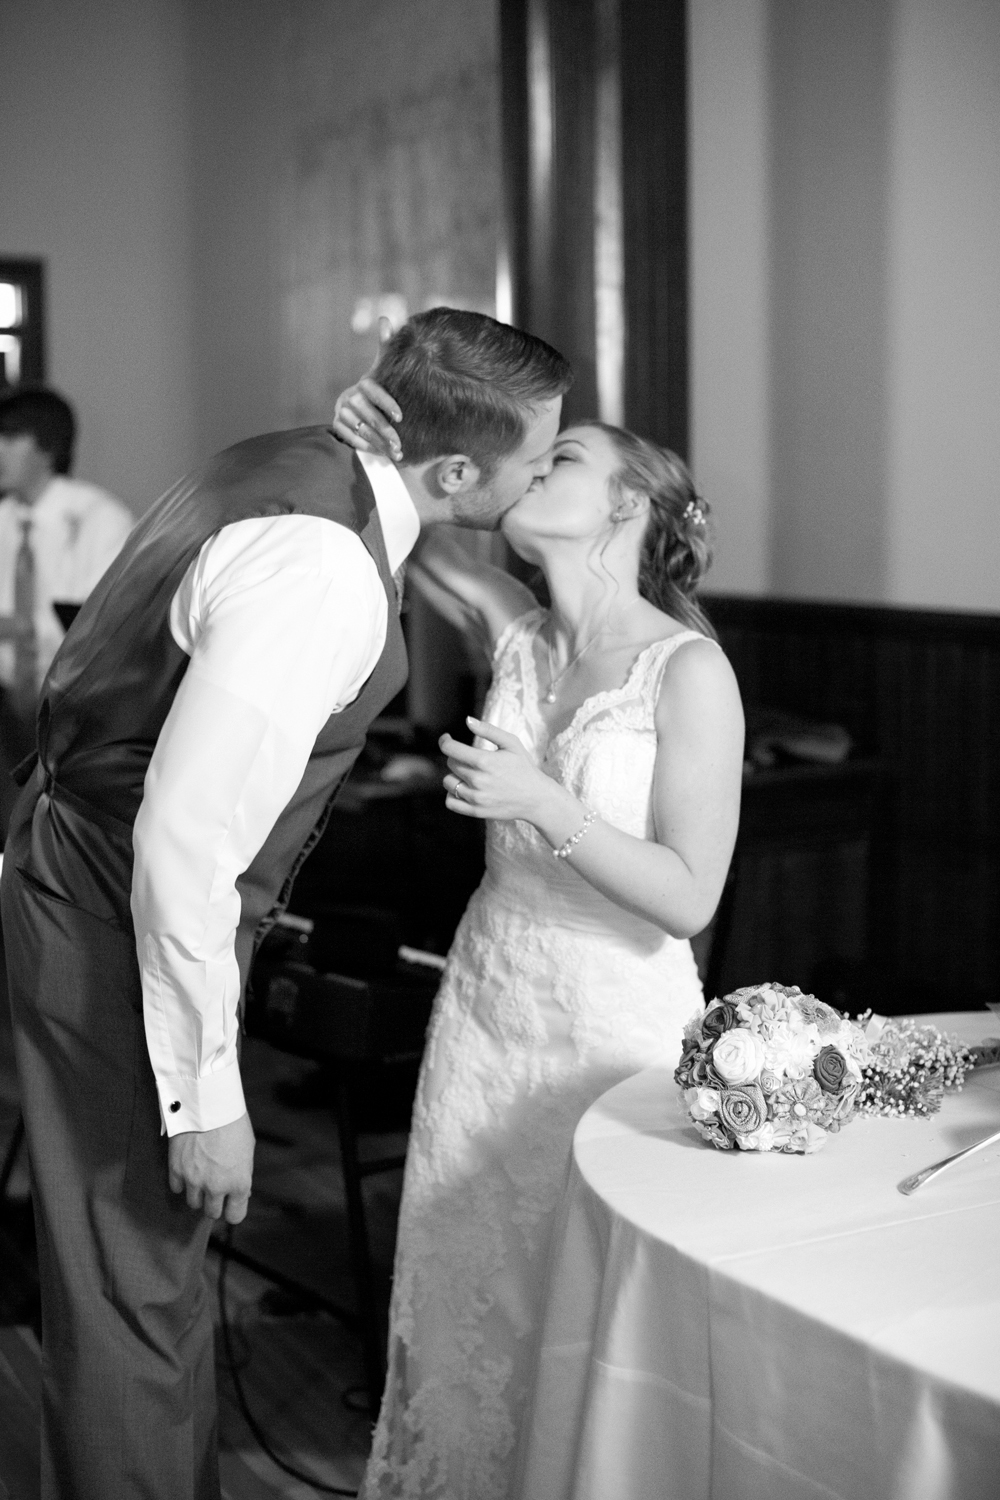 Bride and groom share a kiss by the wedding cake stand (black and white)